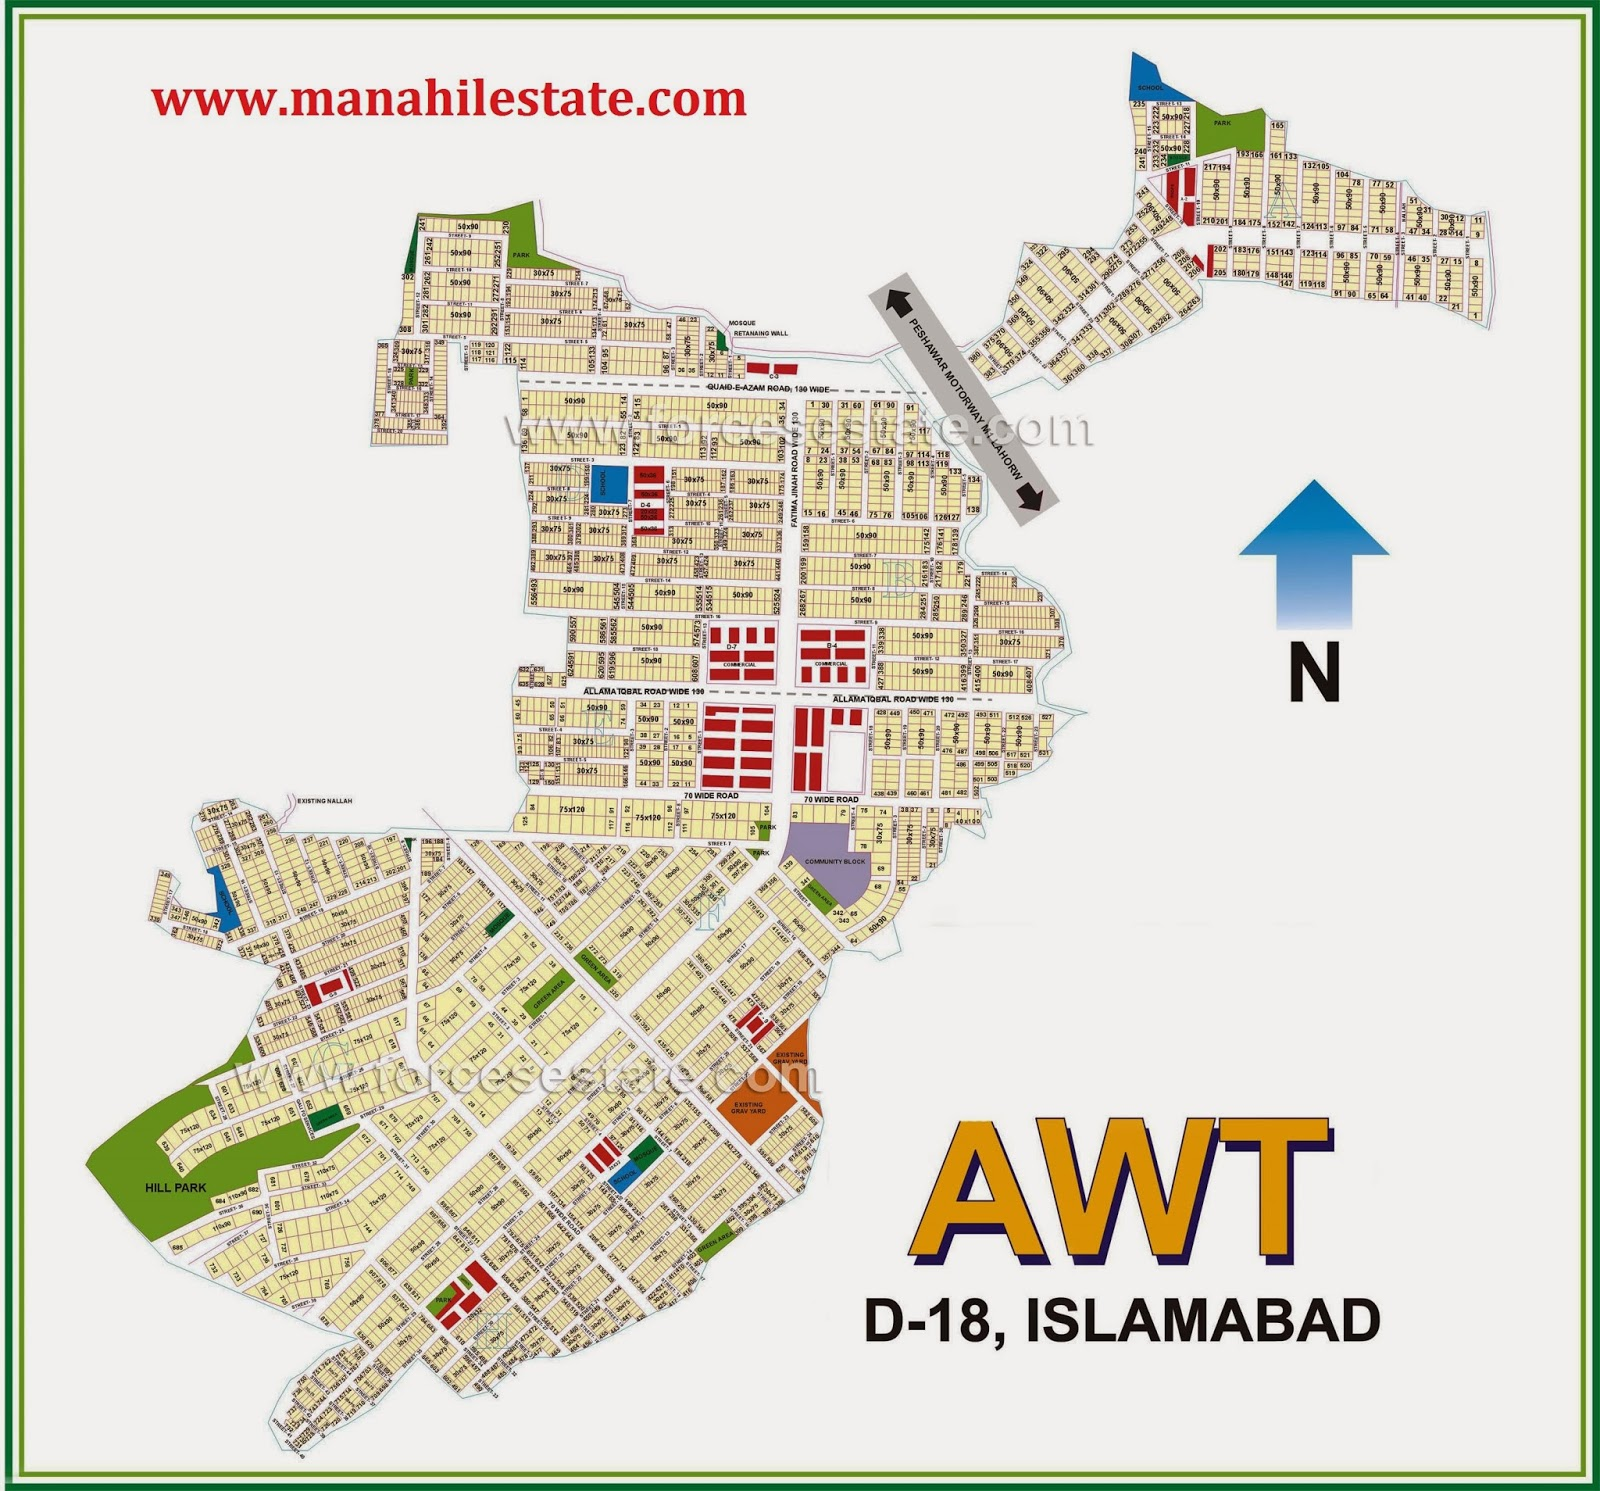 Awt d-18 islamabad map manahil estate.